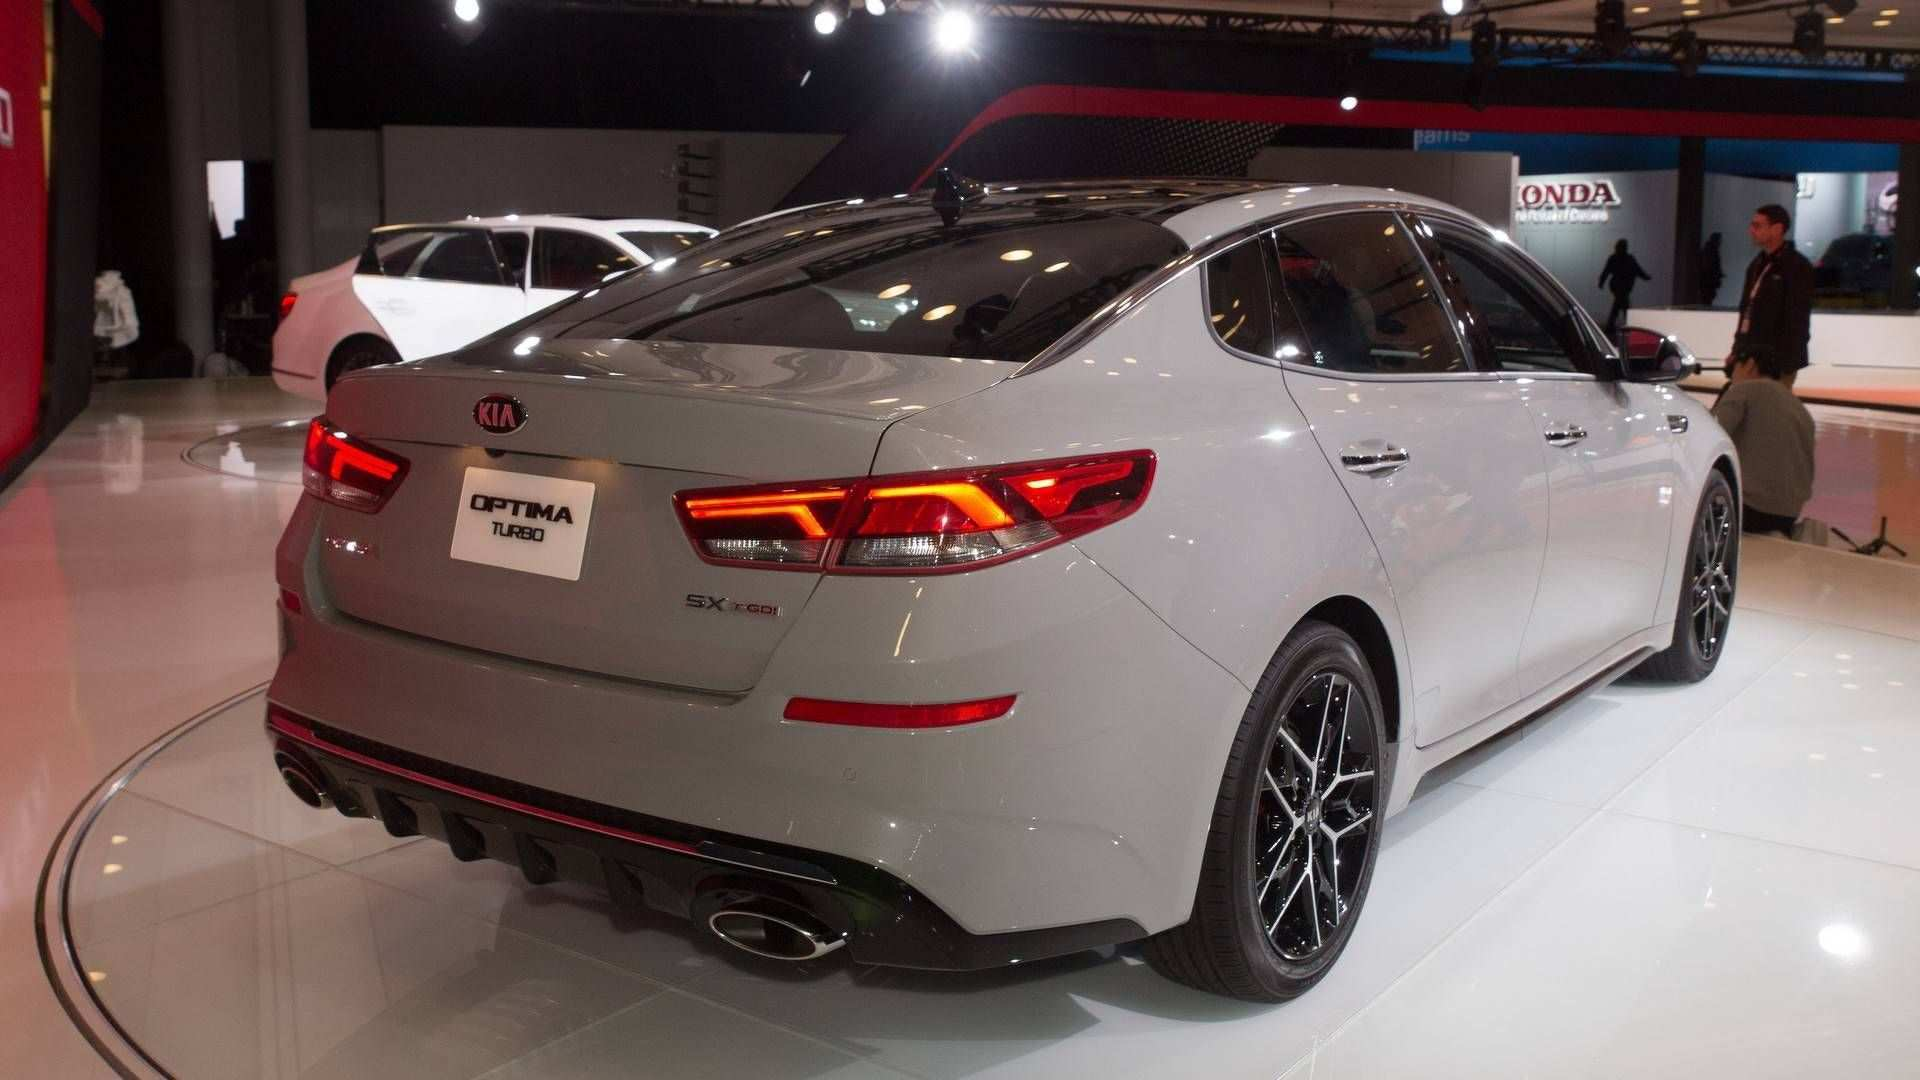 60 Great 2020 Kia Optima Redesign Redesign and Concept with 2020 Kia Optima Redesign